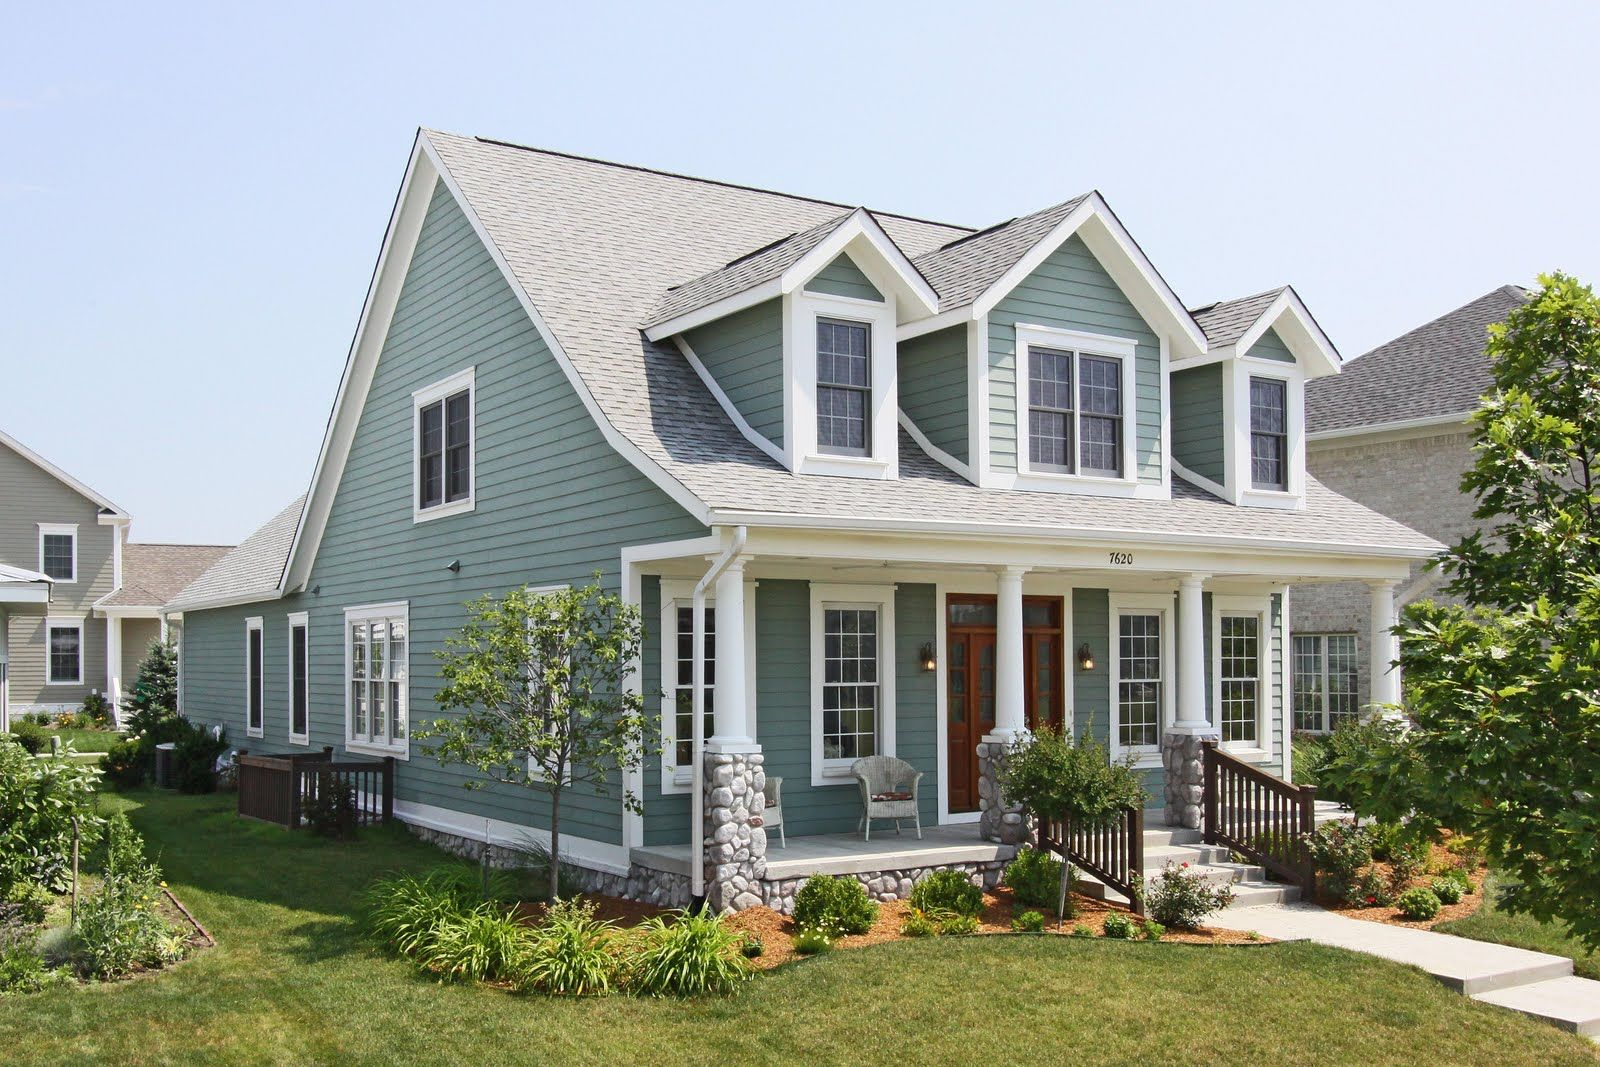 Beautiful Cape Cod House Design Ideas Part - 8: Cape Cod With Dormers And Porch. Not In Love With The Stone (not As